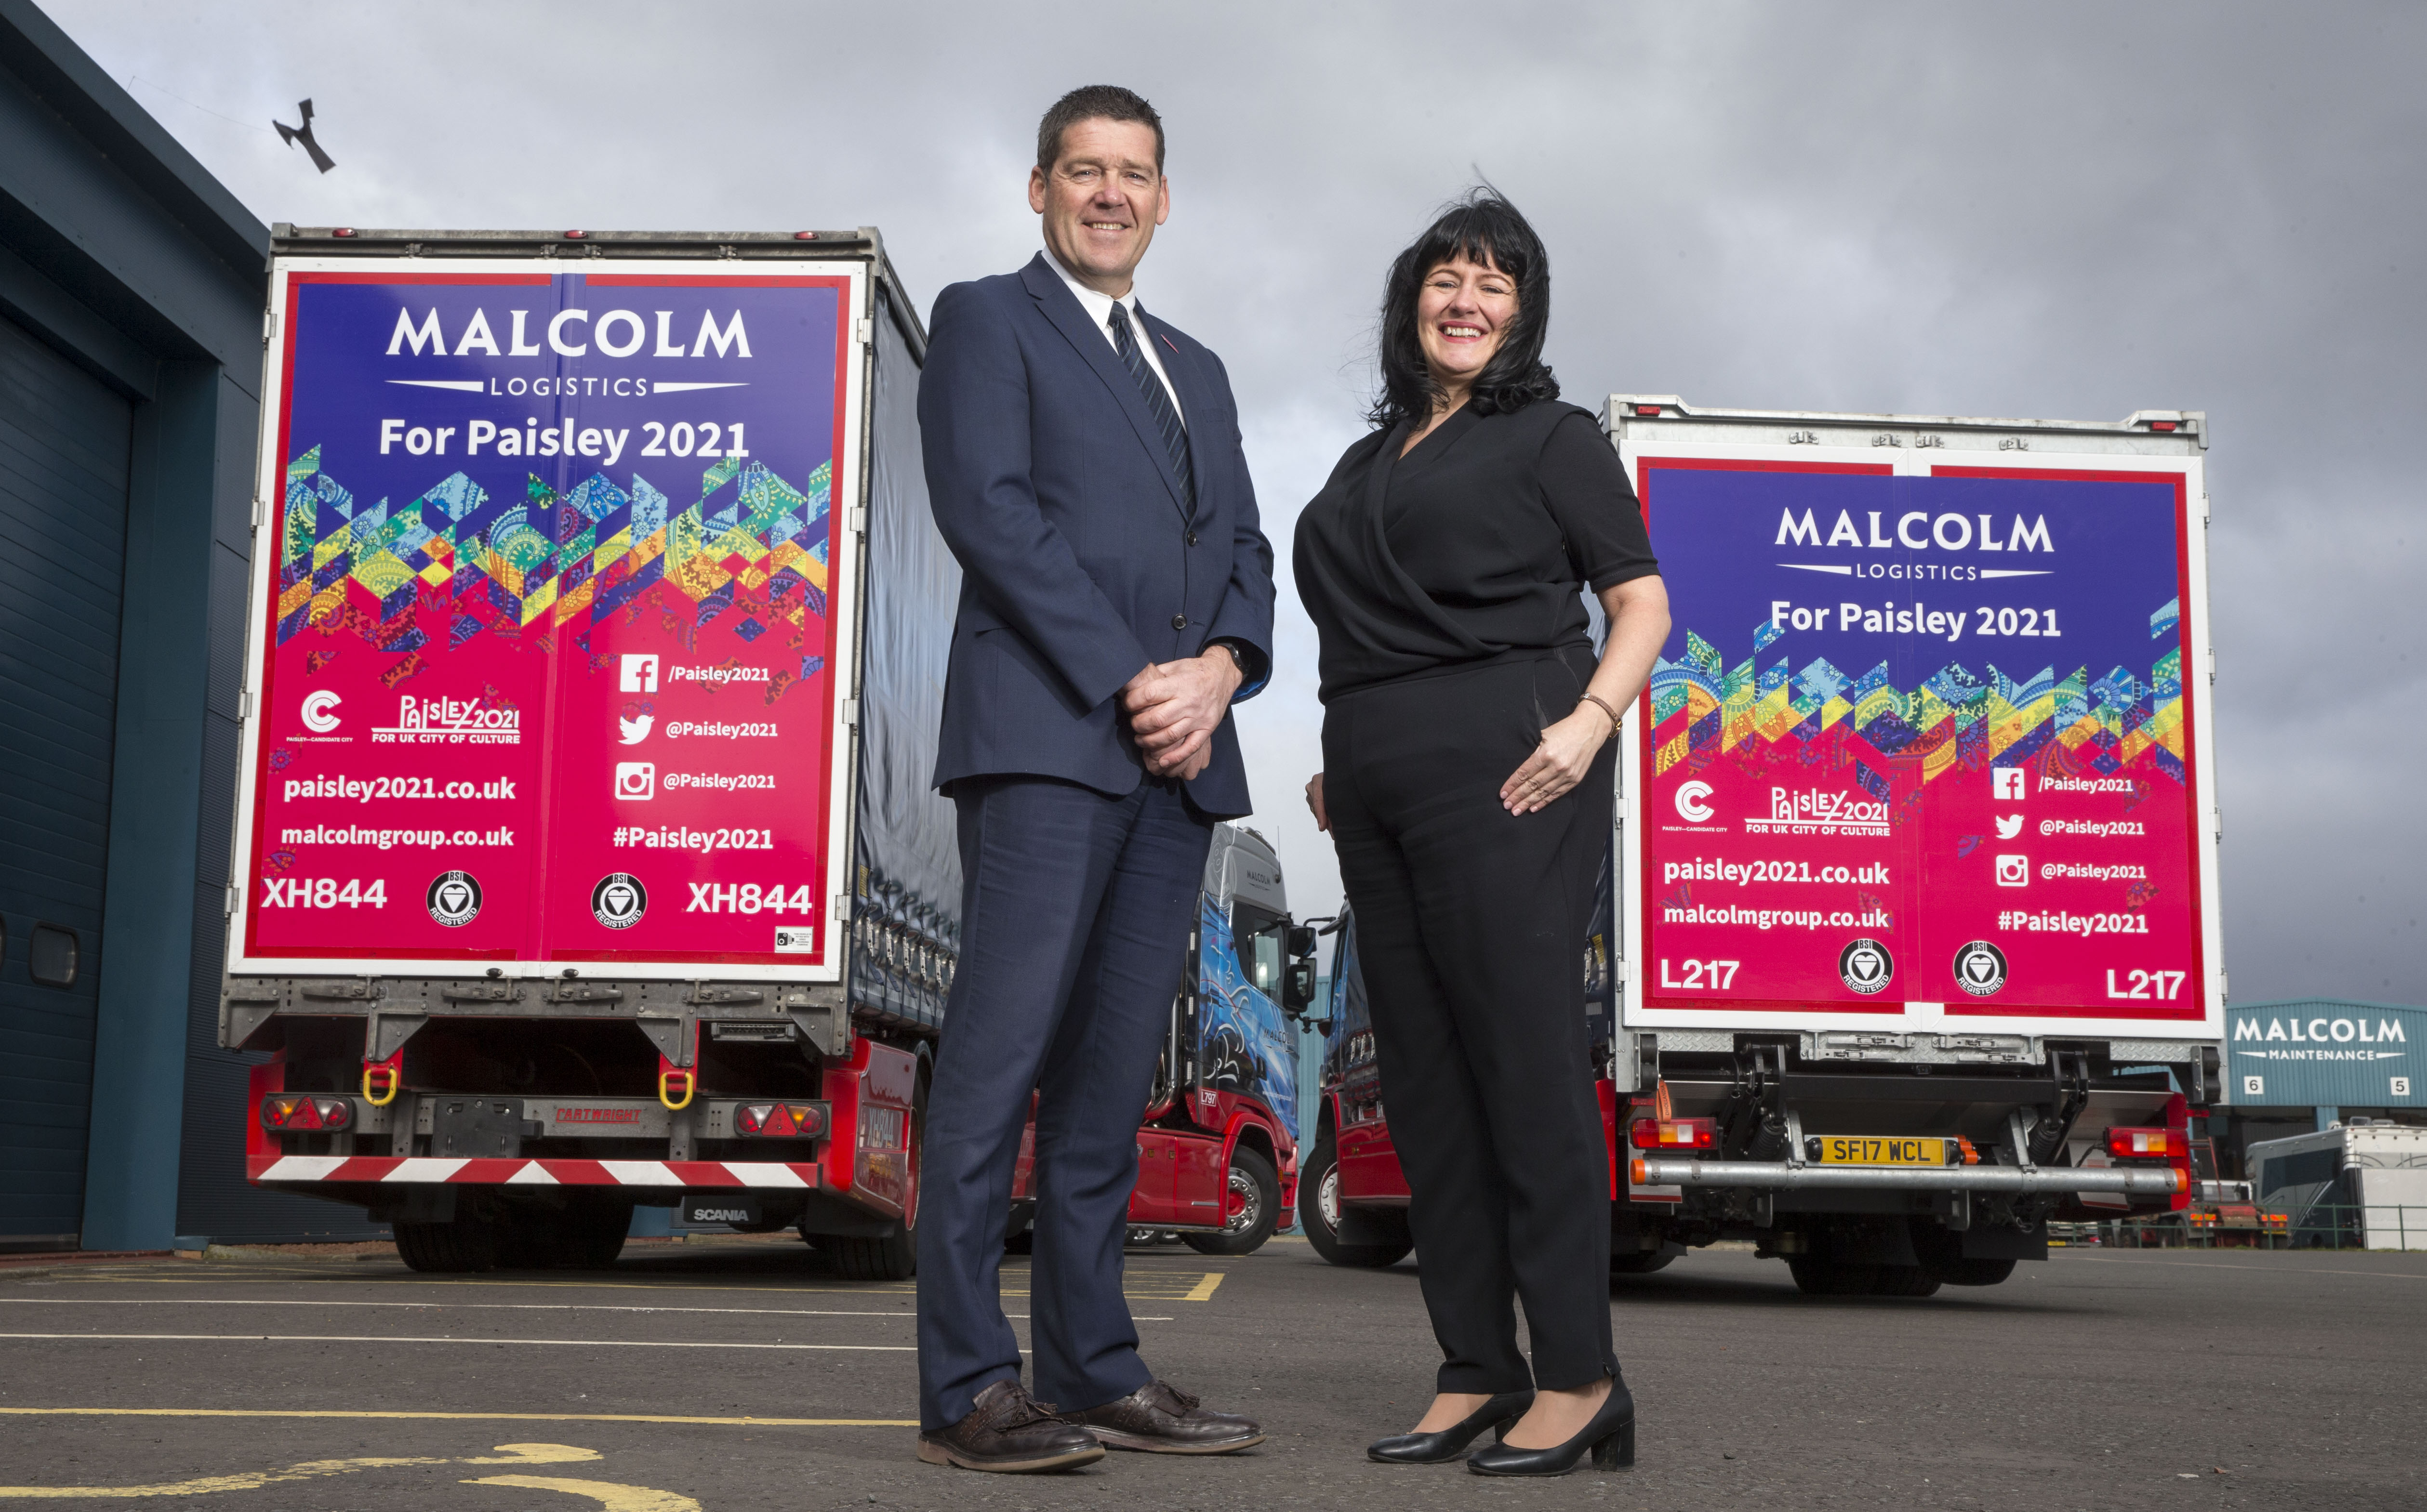 Malcolm logistics firm spreading Paisley 2021 message with special trailers